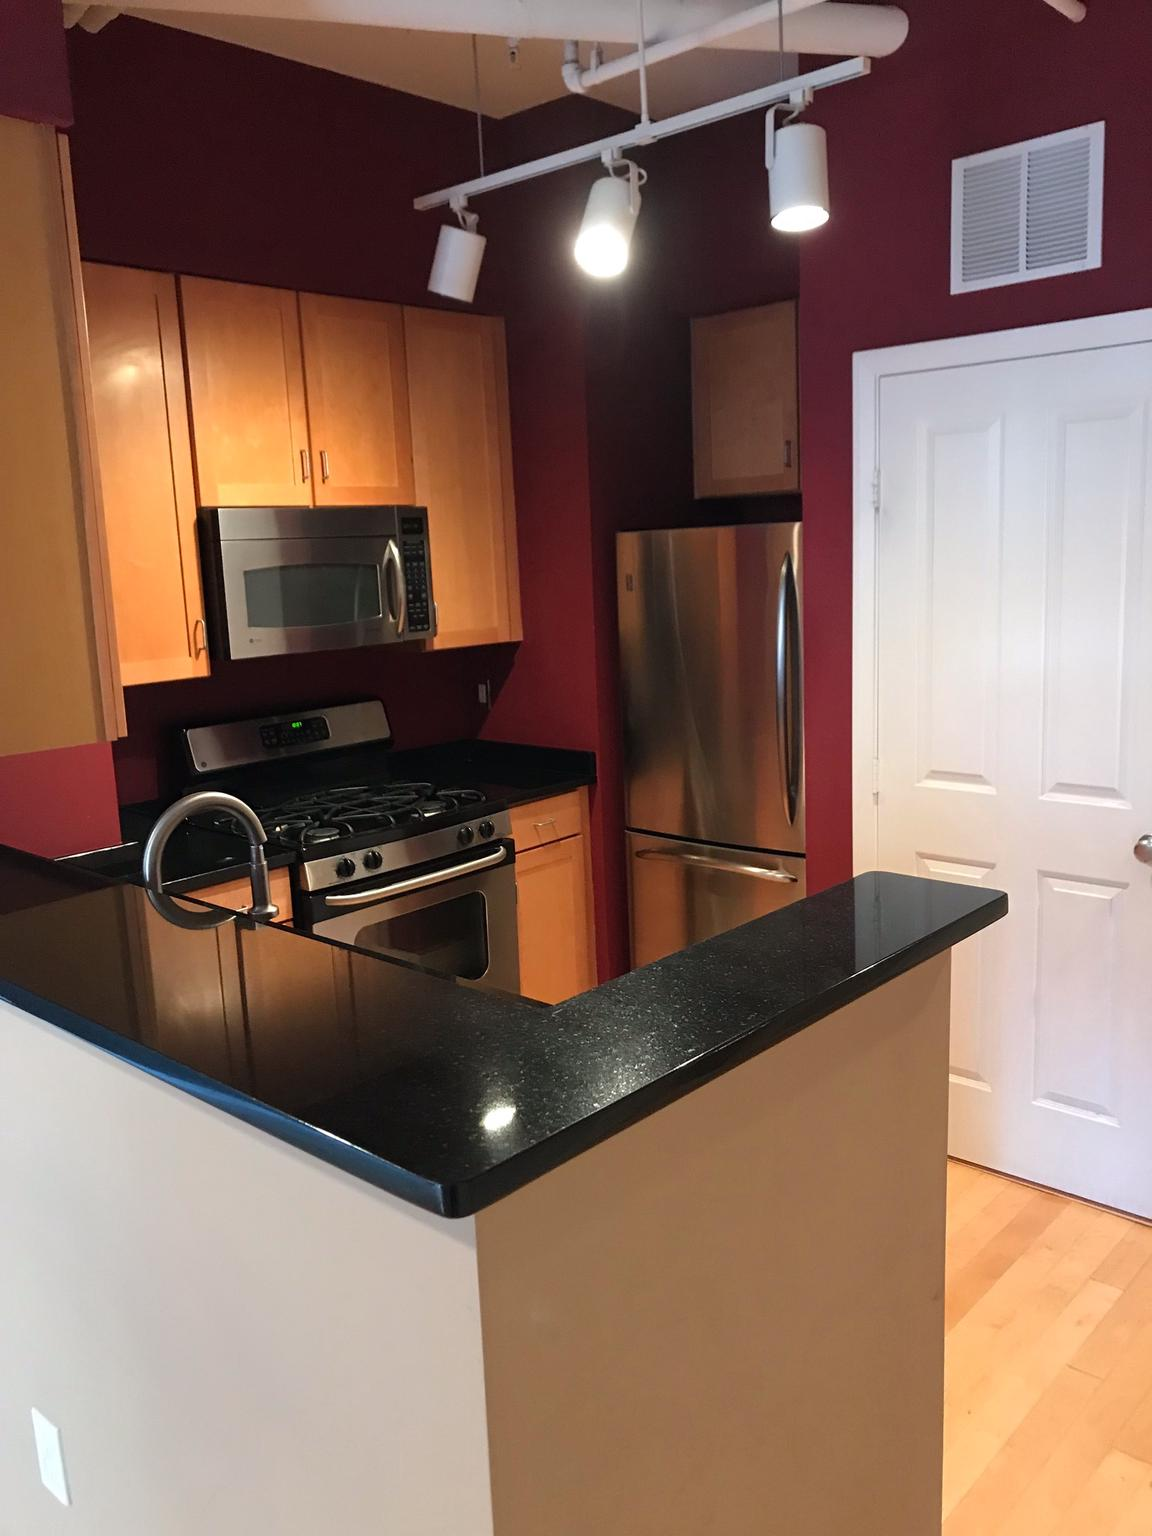 Other Residential for Rent at 1205 N Garfield St #310 1205 N Garfield St #310 Arlington, Virginia 22201 United States